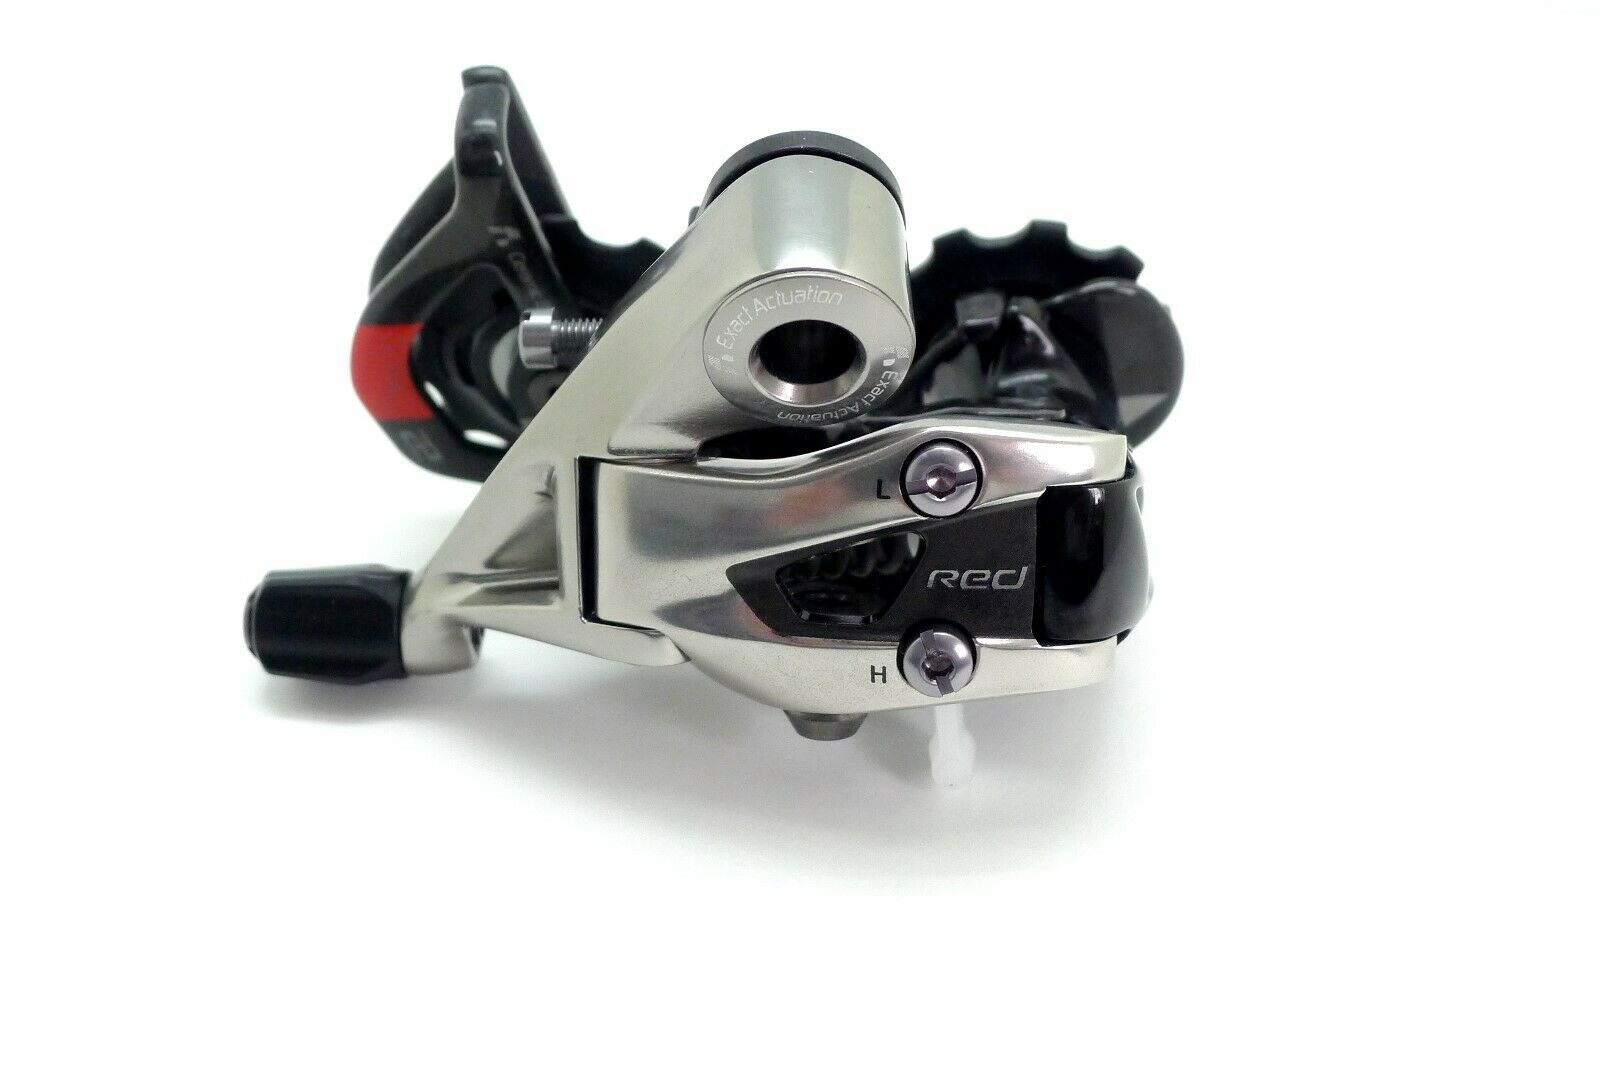 SRAM Red 22  11 Speed Short Cage Rear Derailleur  factory outlet online discount sale